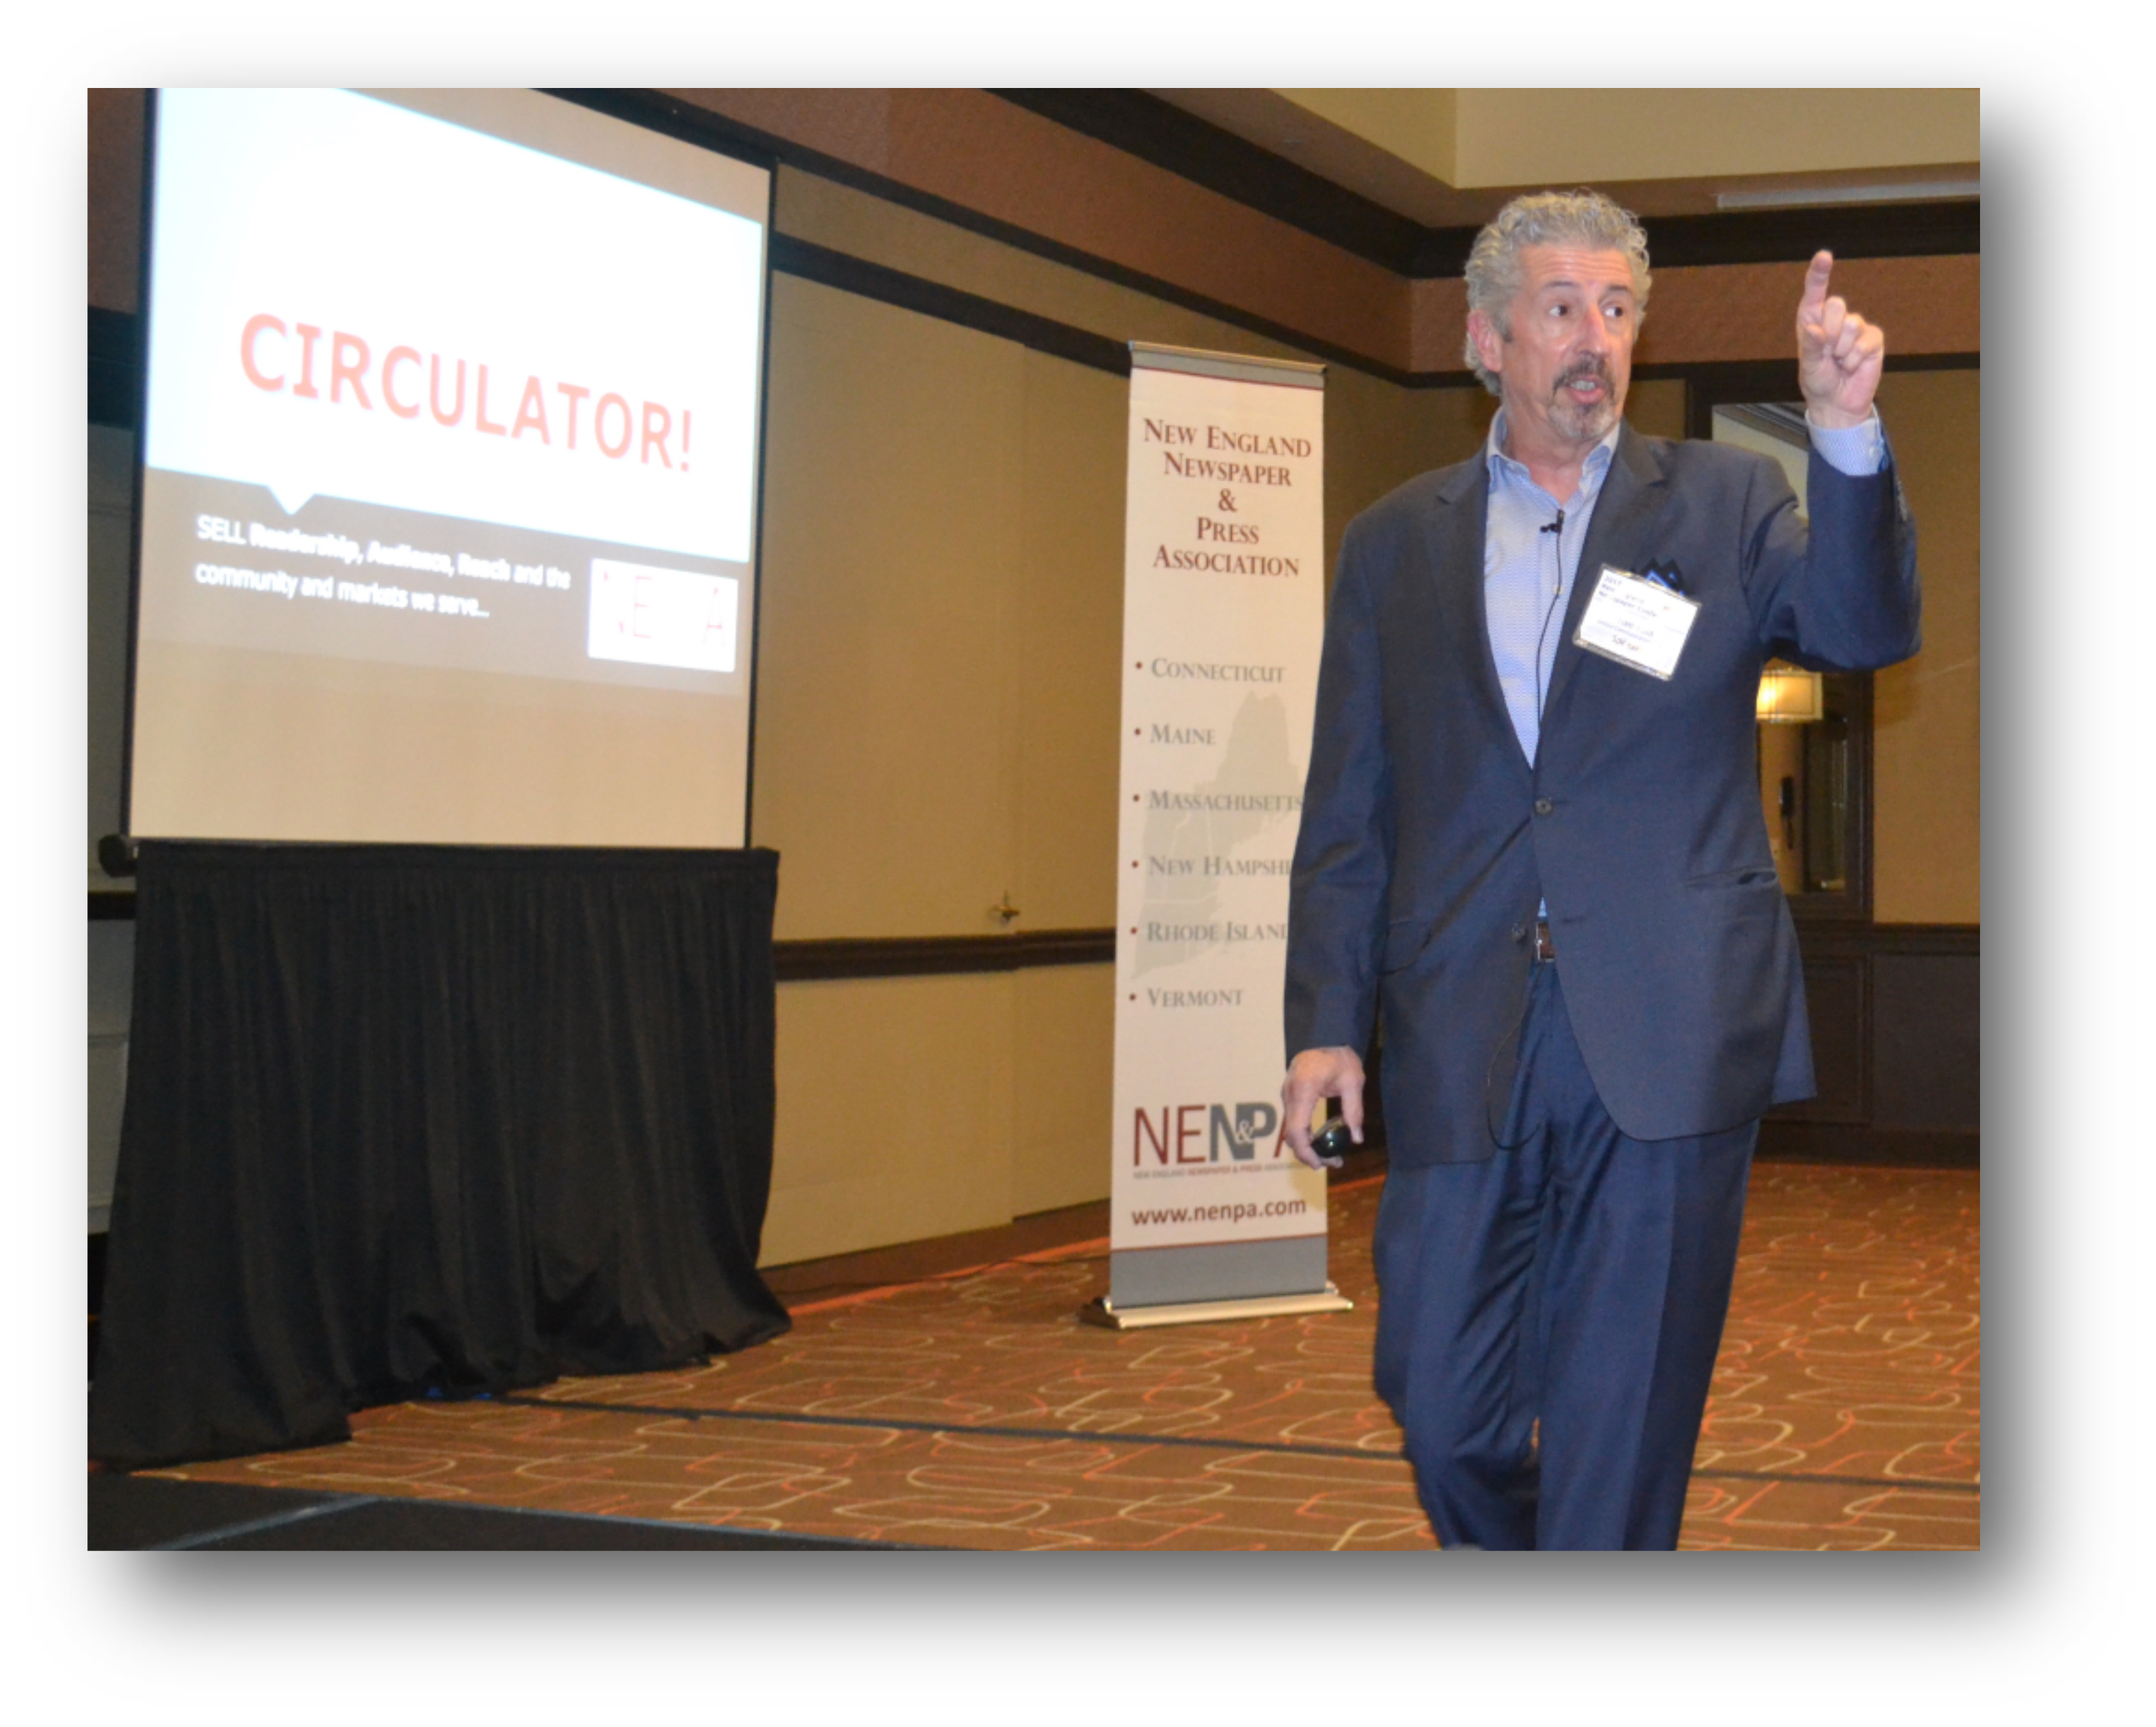 Best picture of general communications woburn ma - Keynote Speaker Yunt Papers Survival Depends On Open Minds Communication Nenpa